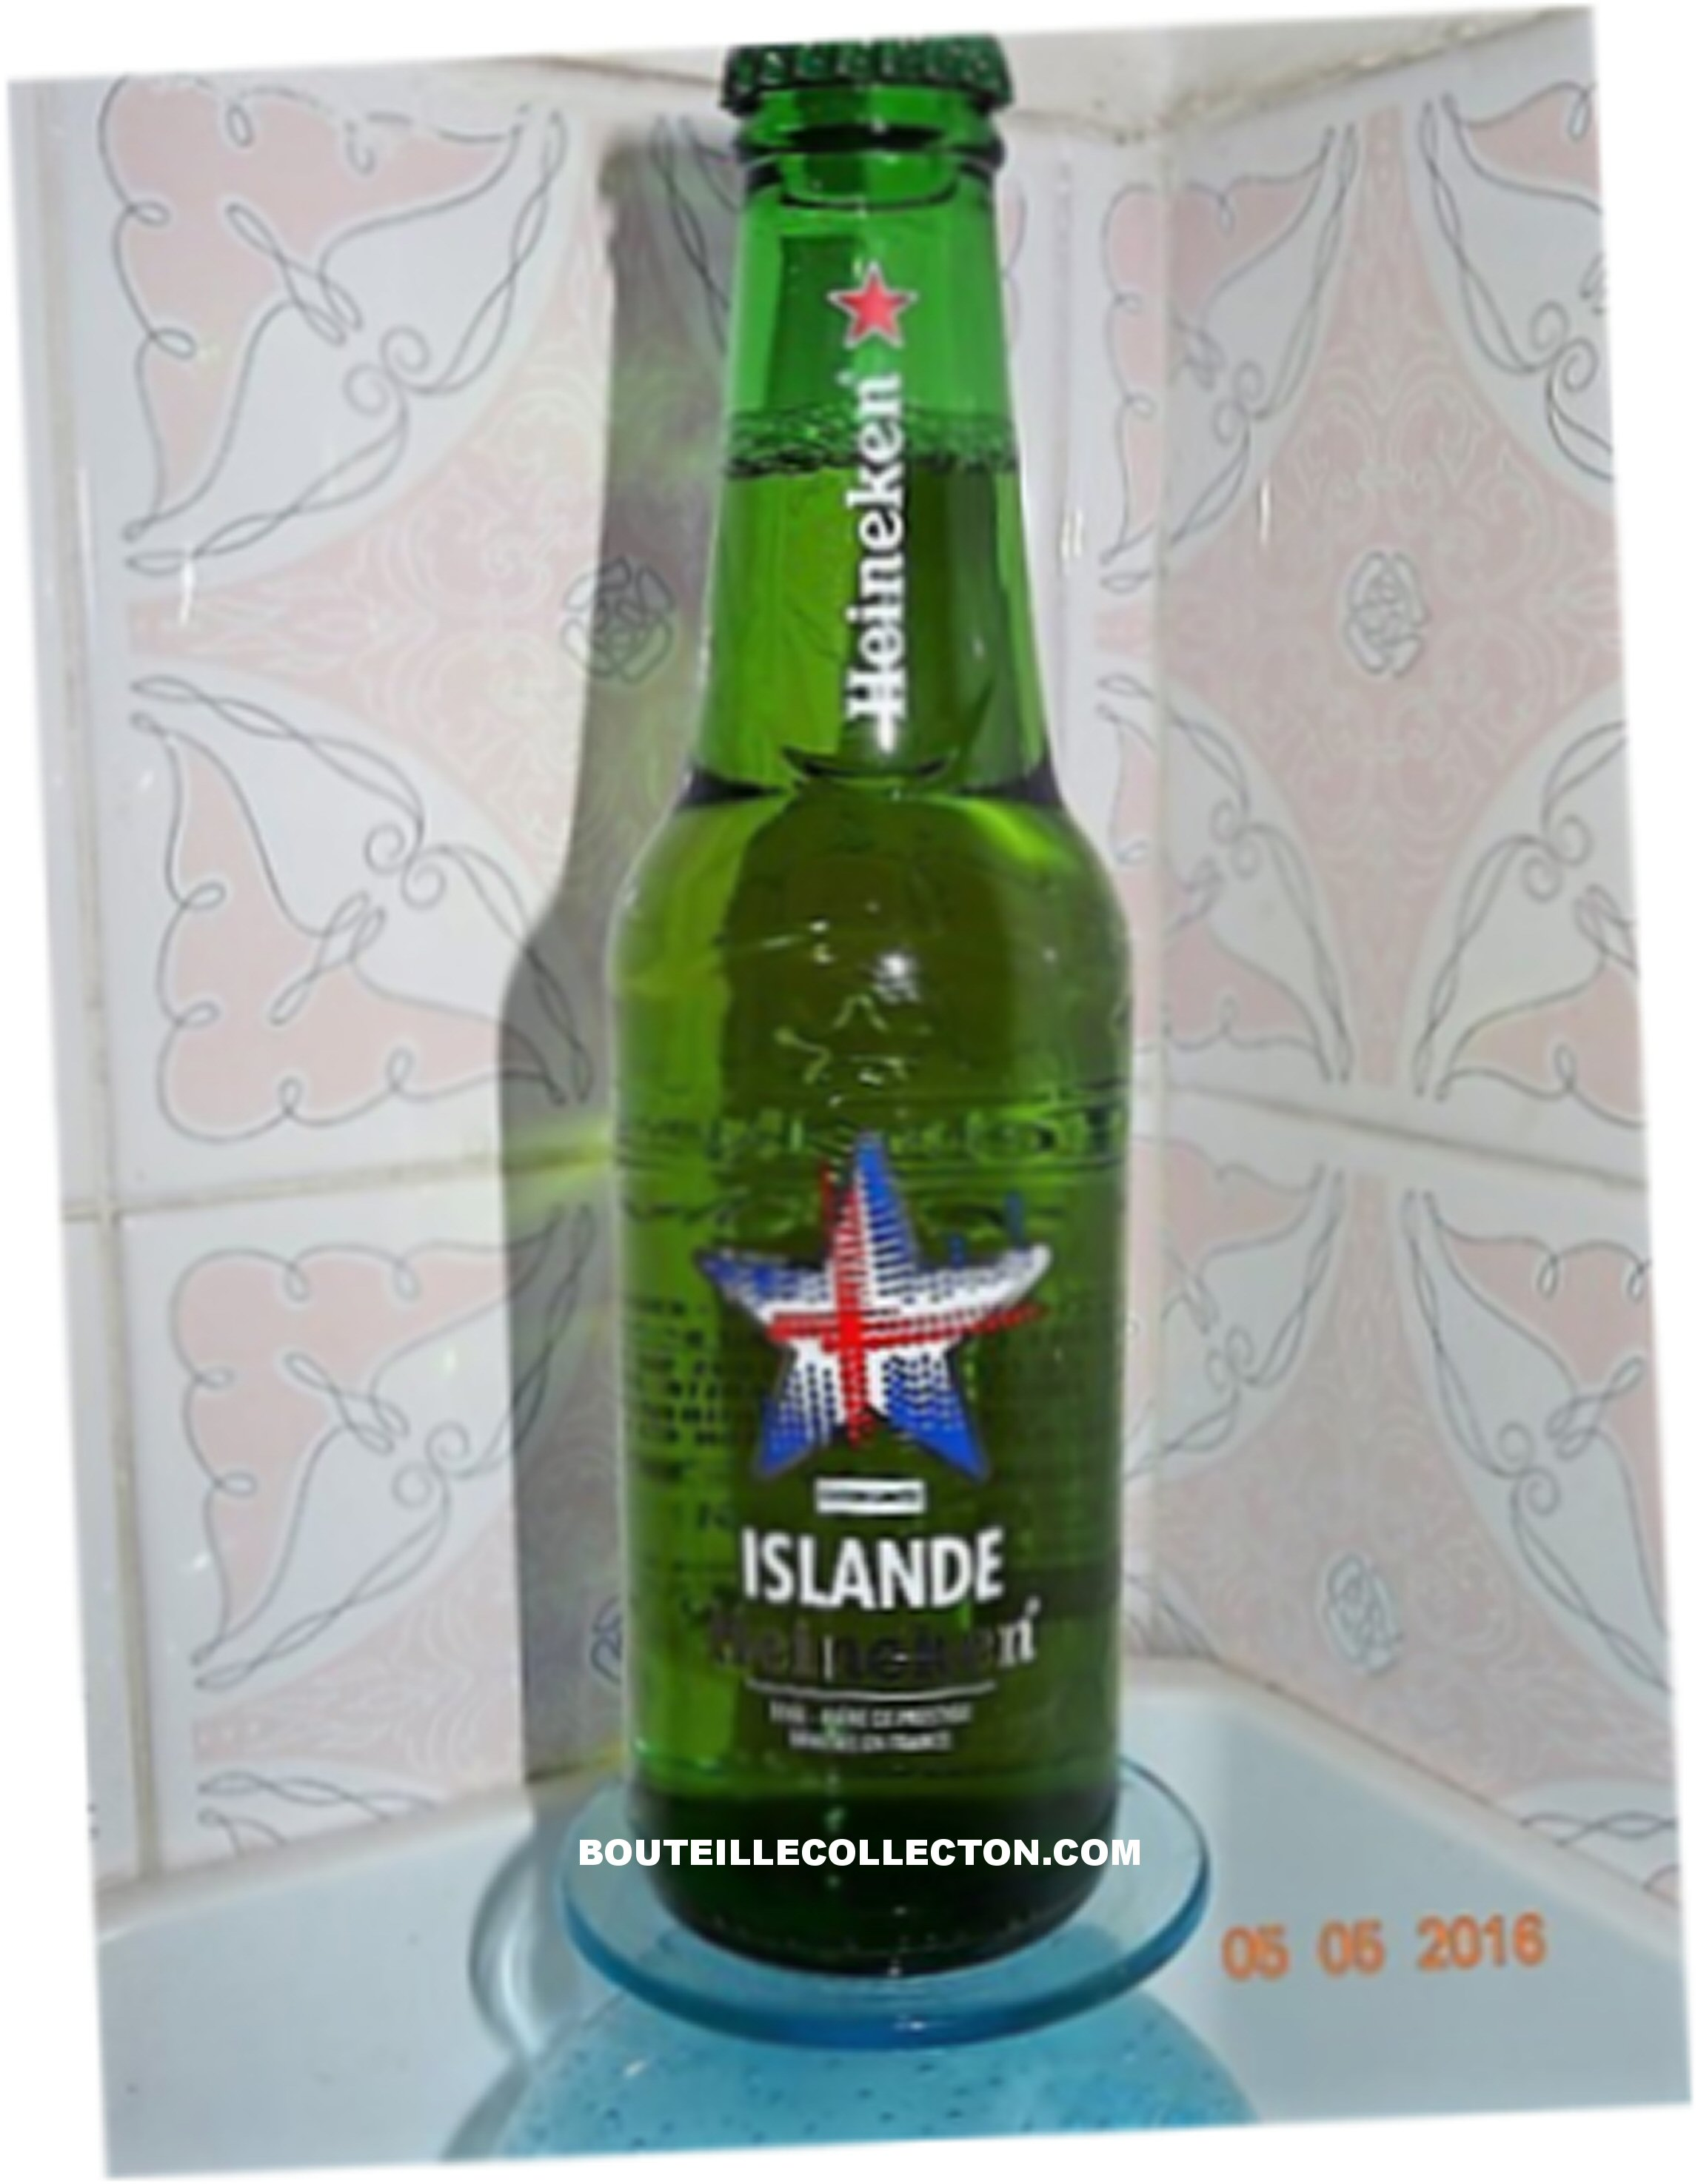 AG HEINEKEN COUNTRIES EDITION ISLANDE 2016 25CL B.jpg